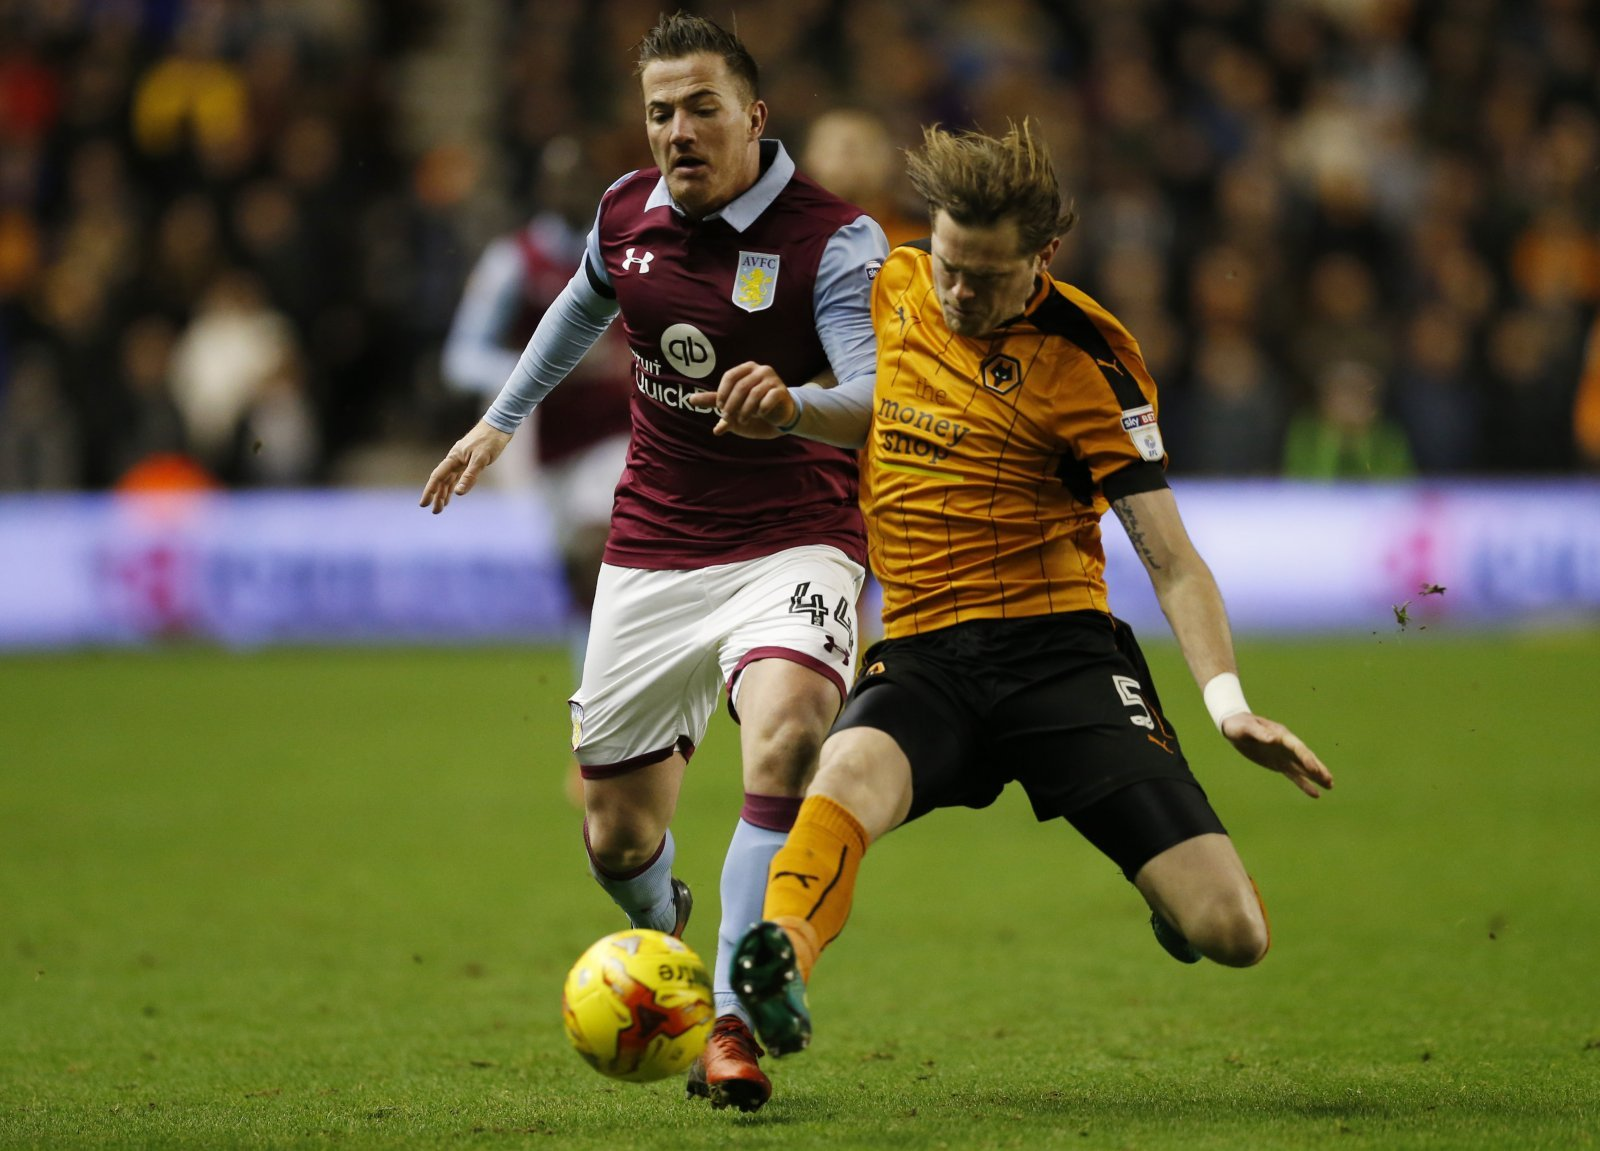 Leed should re-sign Ross McCormack if they suffer injury blow before August 31st